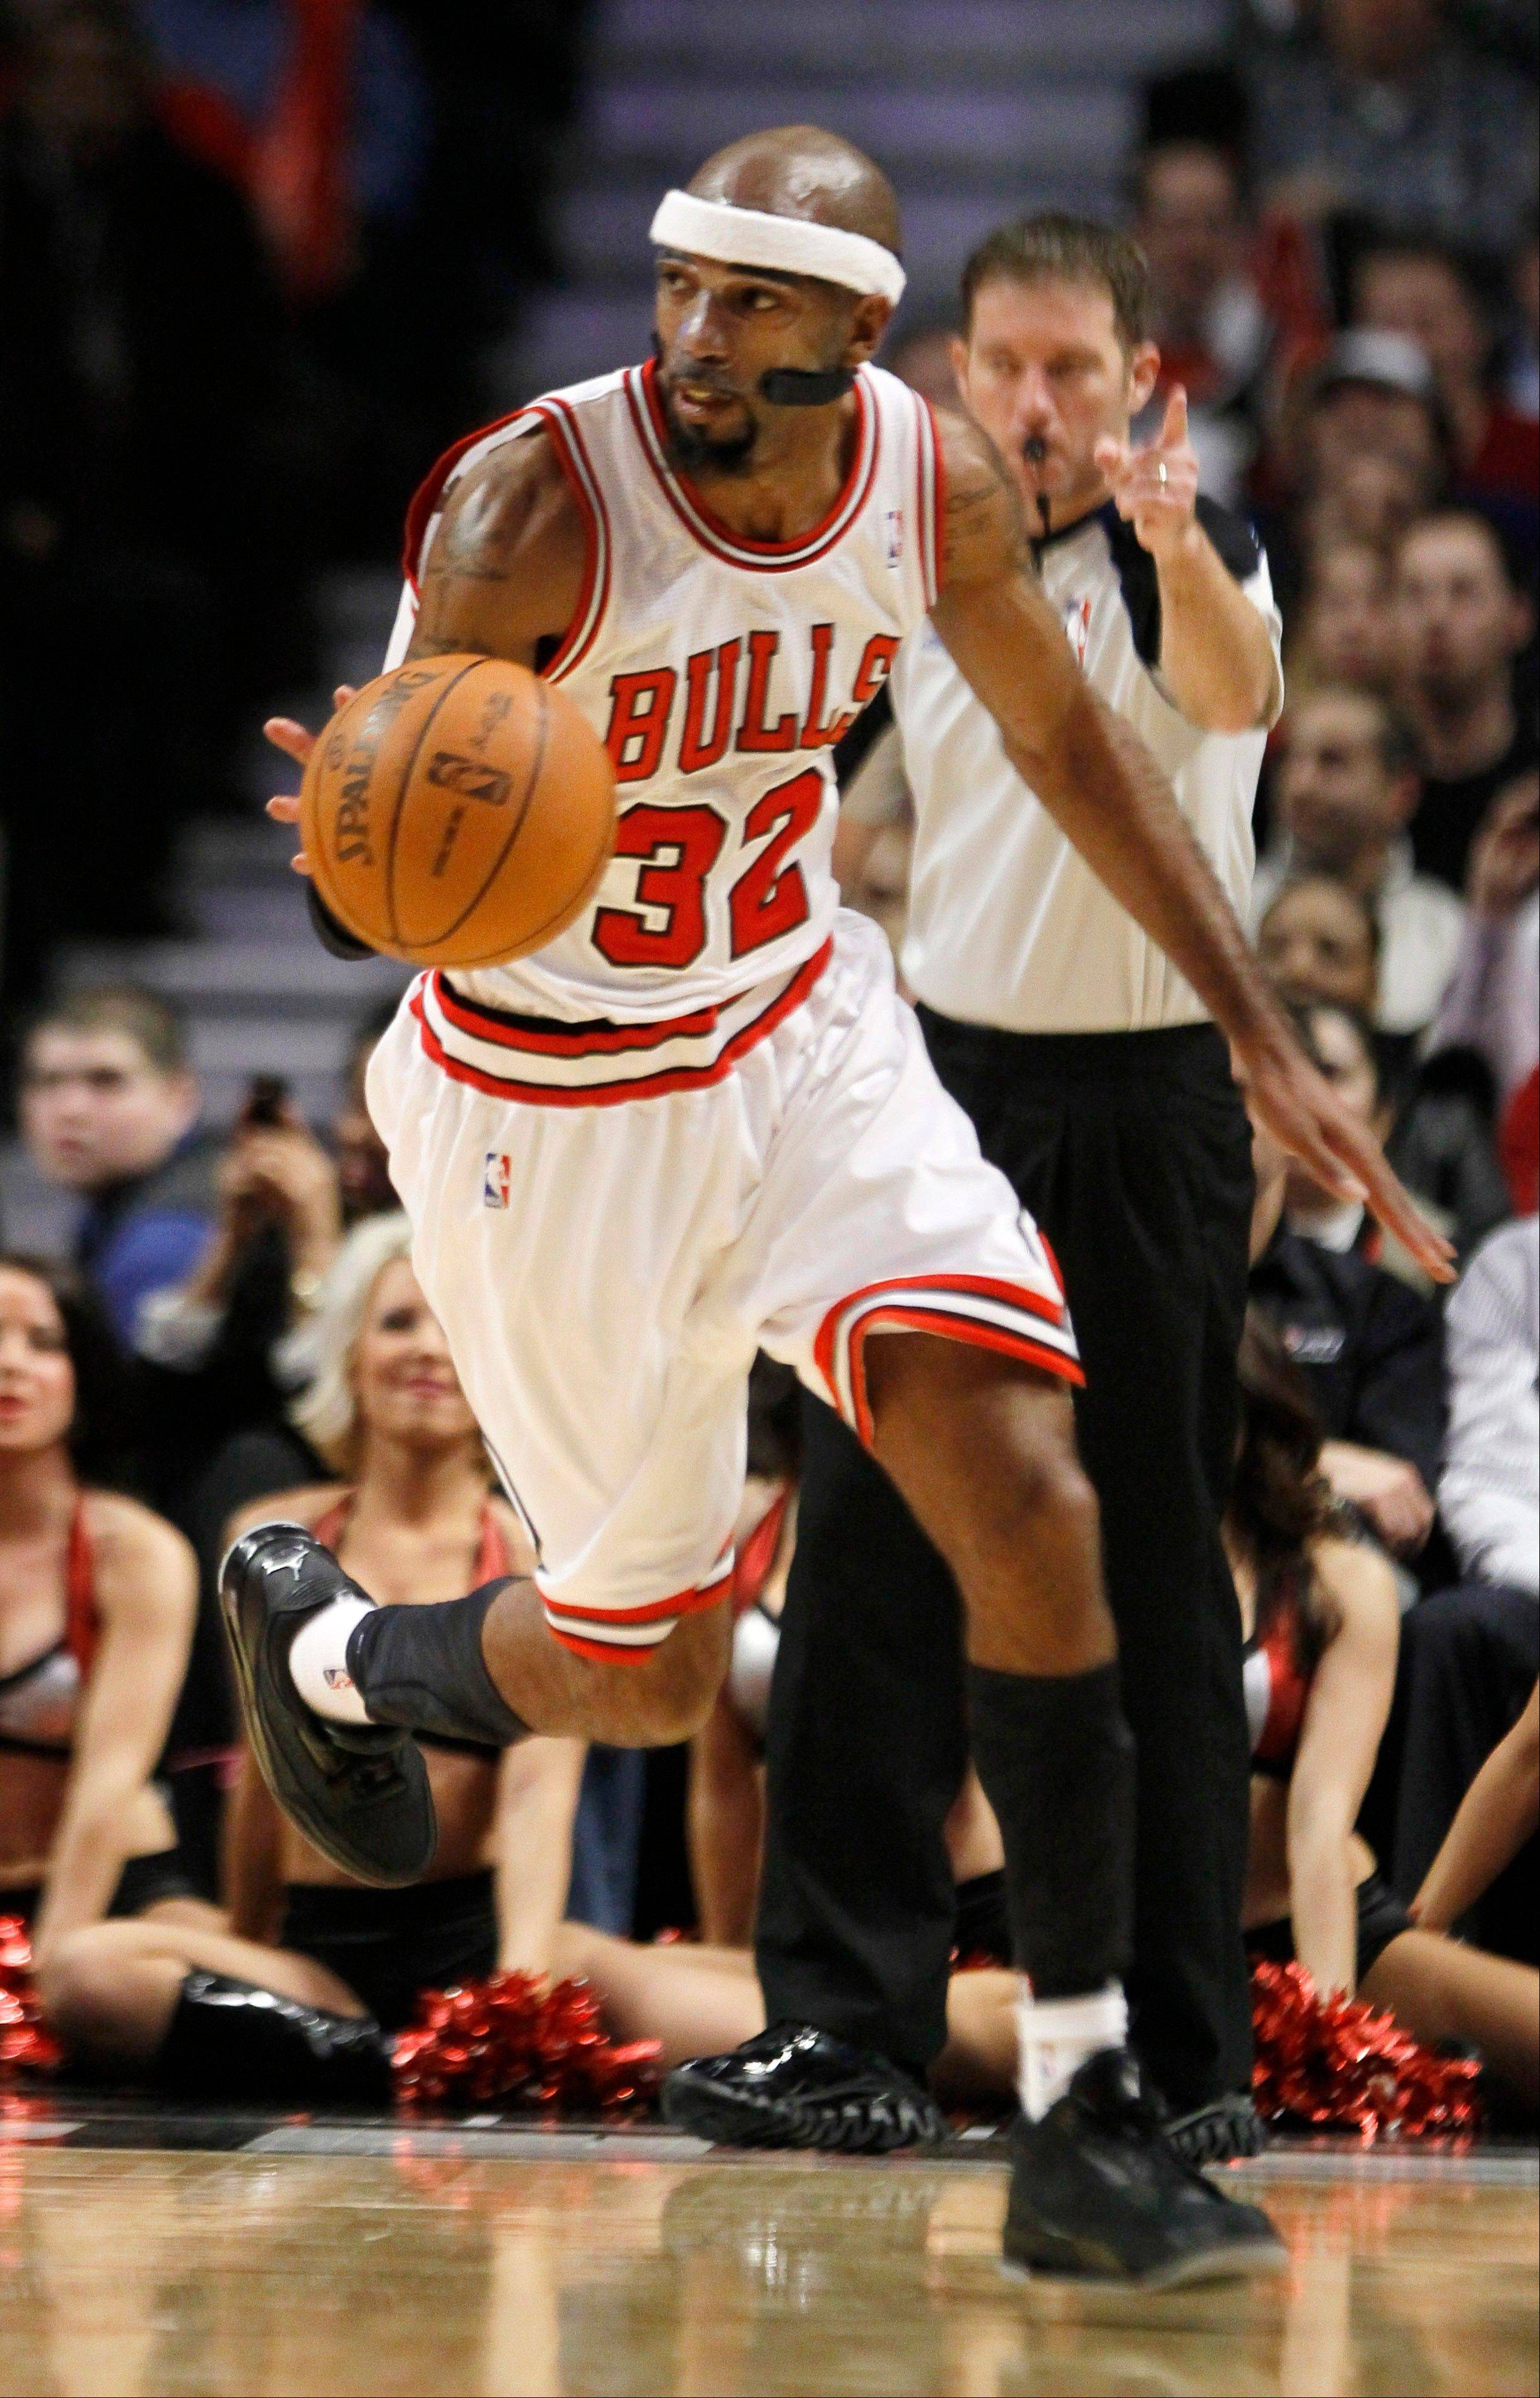 Bulls guard Richard Hamilton, seen here in a January game against New Jersey, injured his right shoulder in a collision with Indiana center Roy Hibbert in Monday's game.